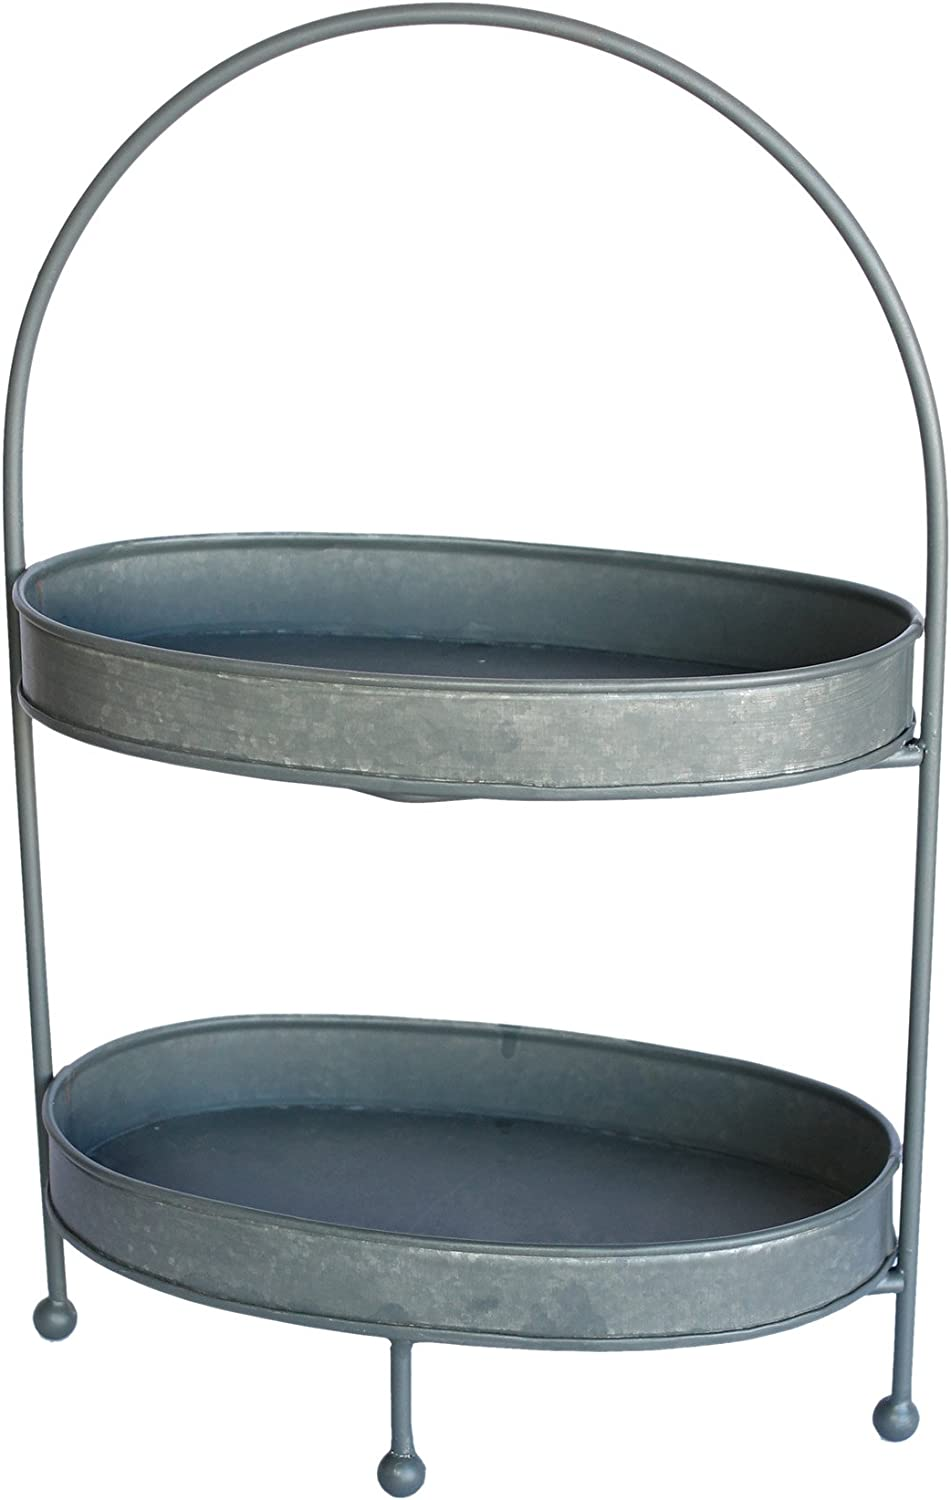 Colonial Tin Works Rustic Two Tier Oval Metal Tray